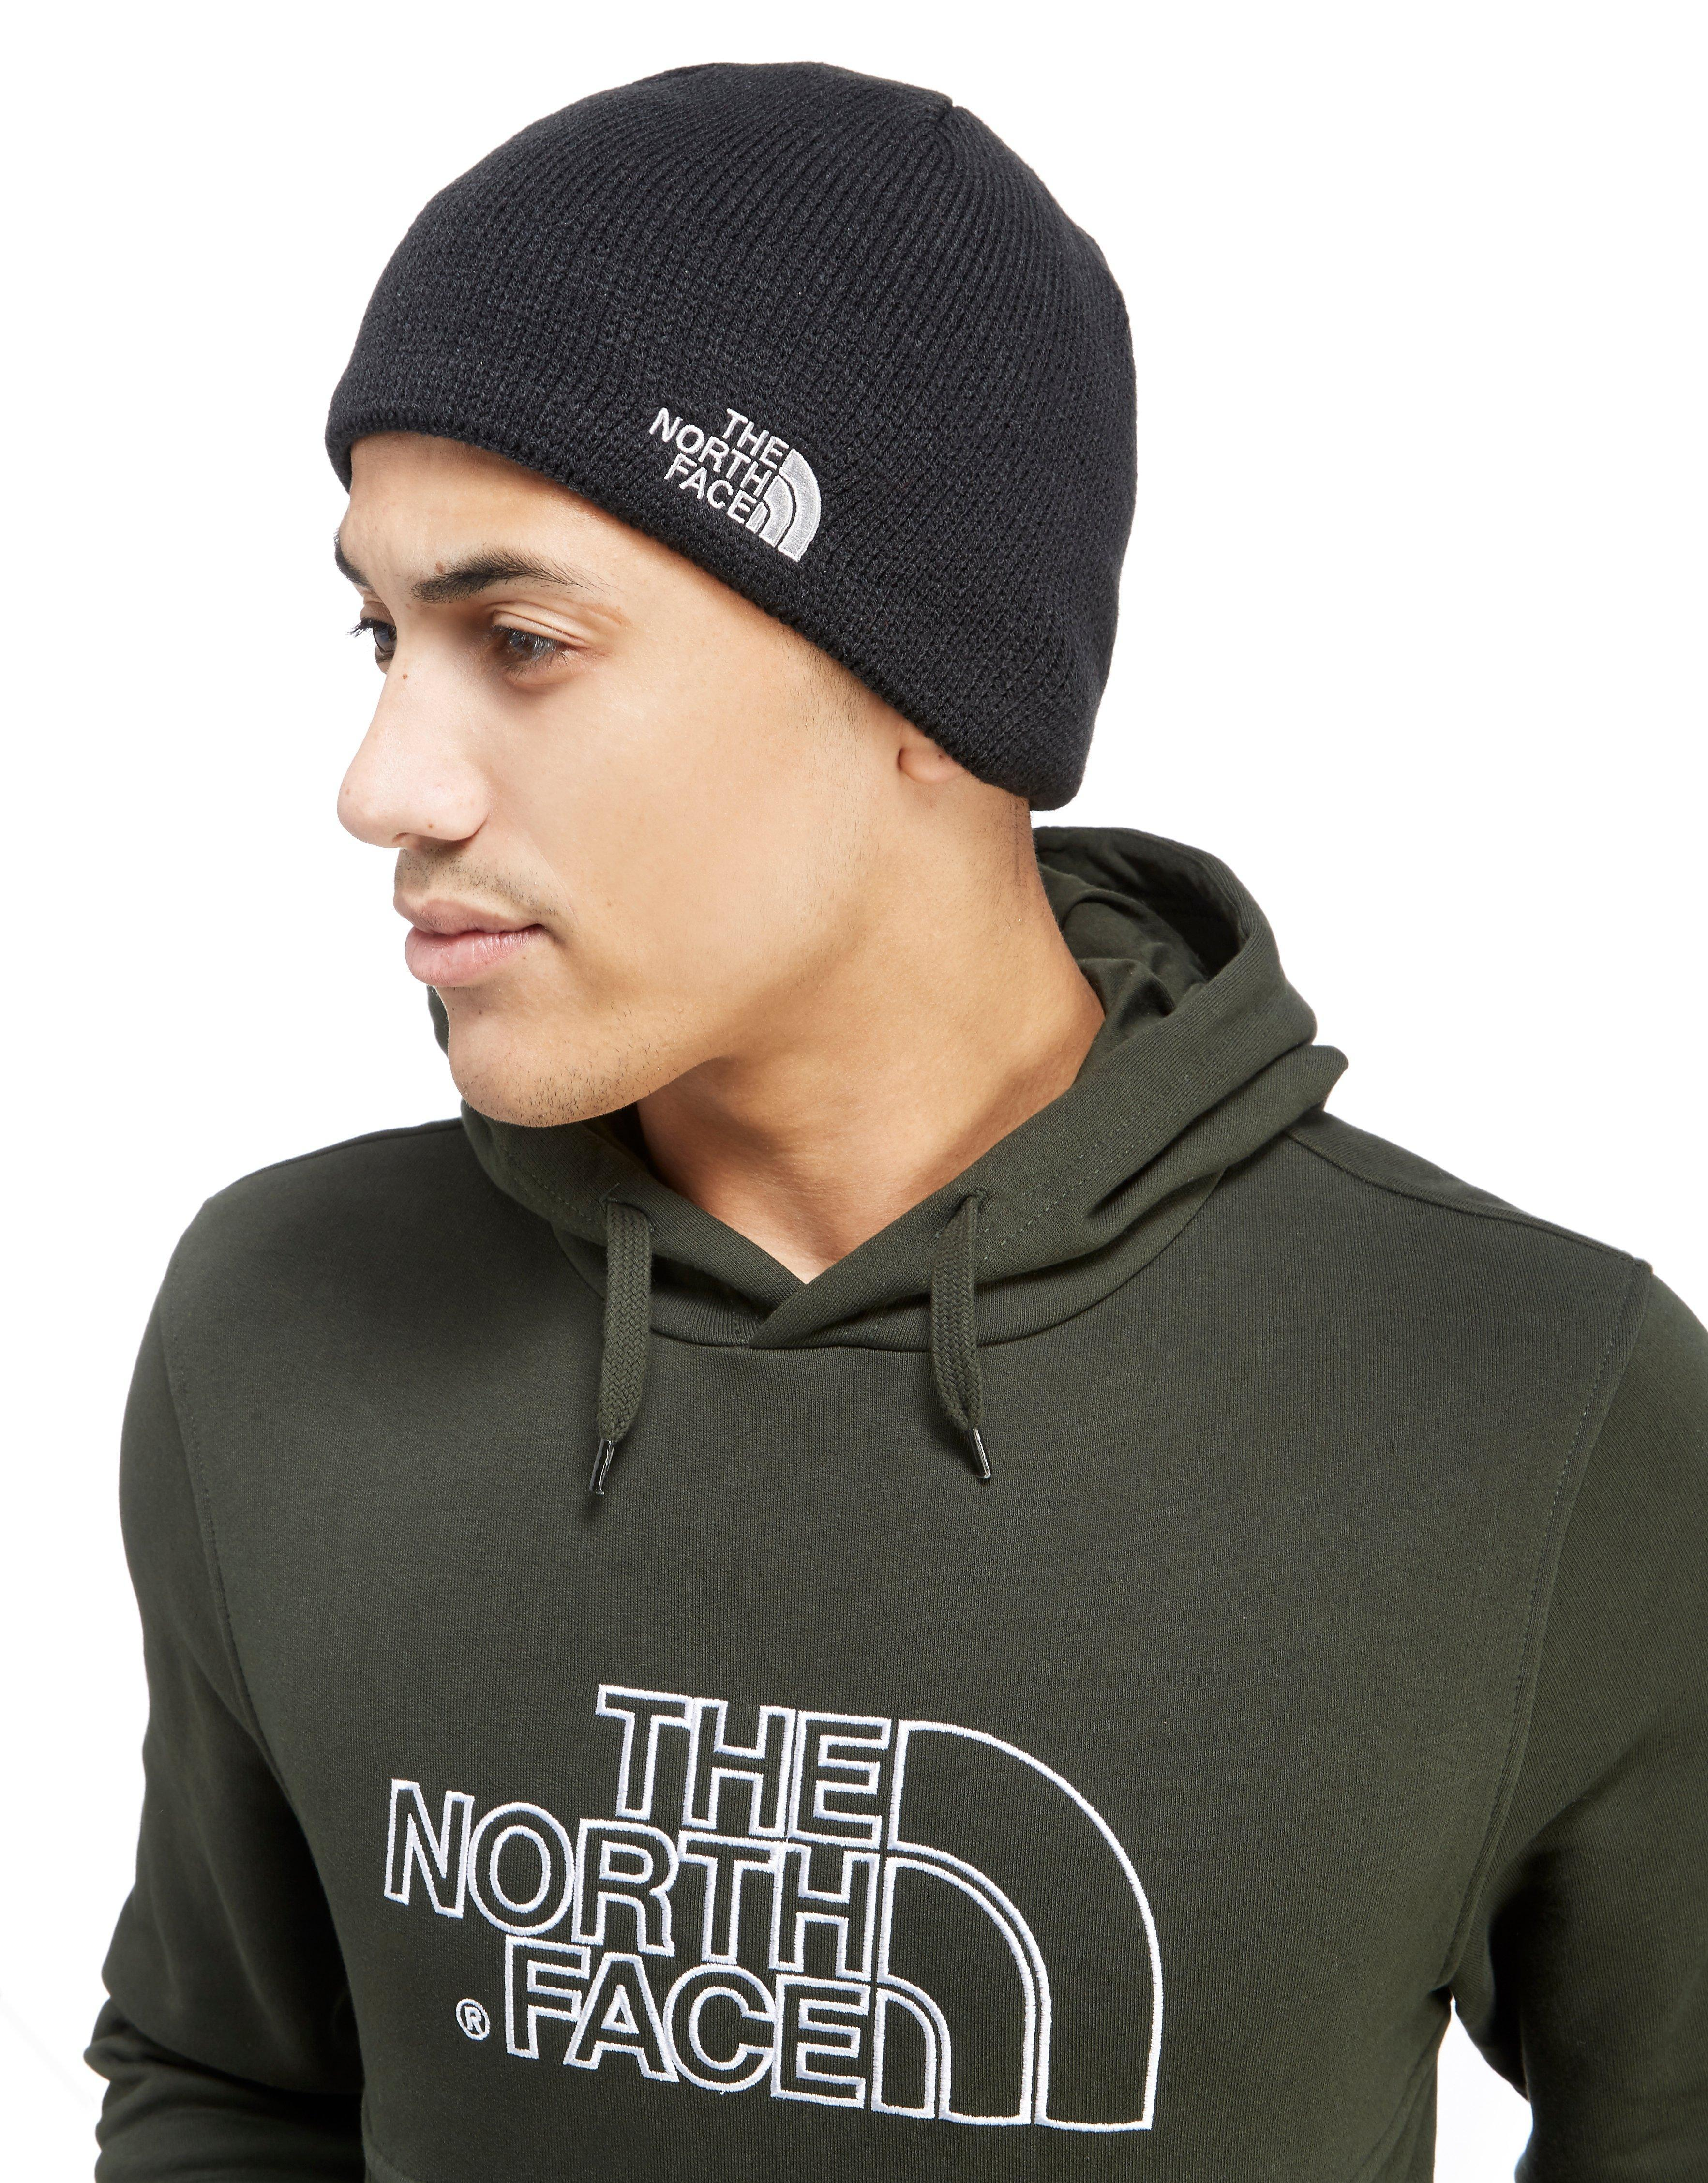 ae7e40cb8187c0 The North Face Bones Beanie Hat in Black for Men - Lyst